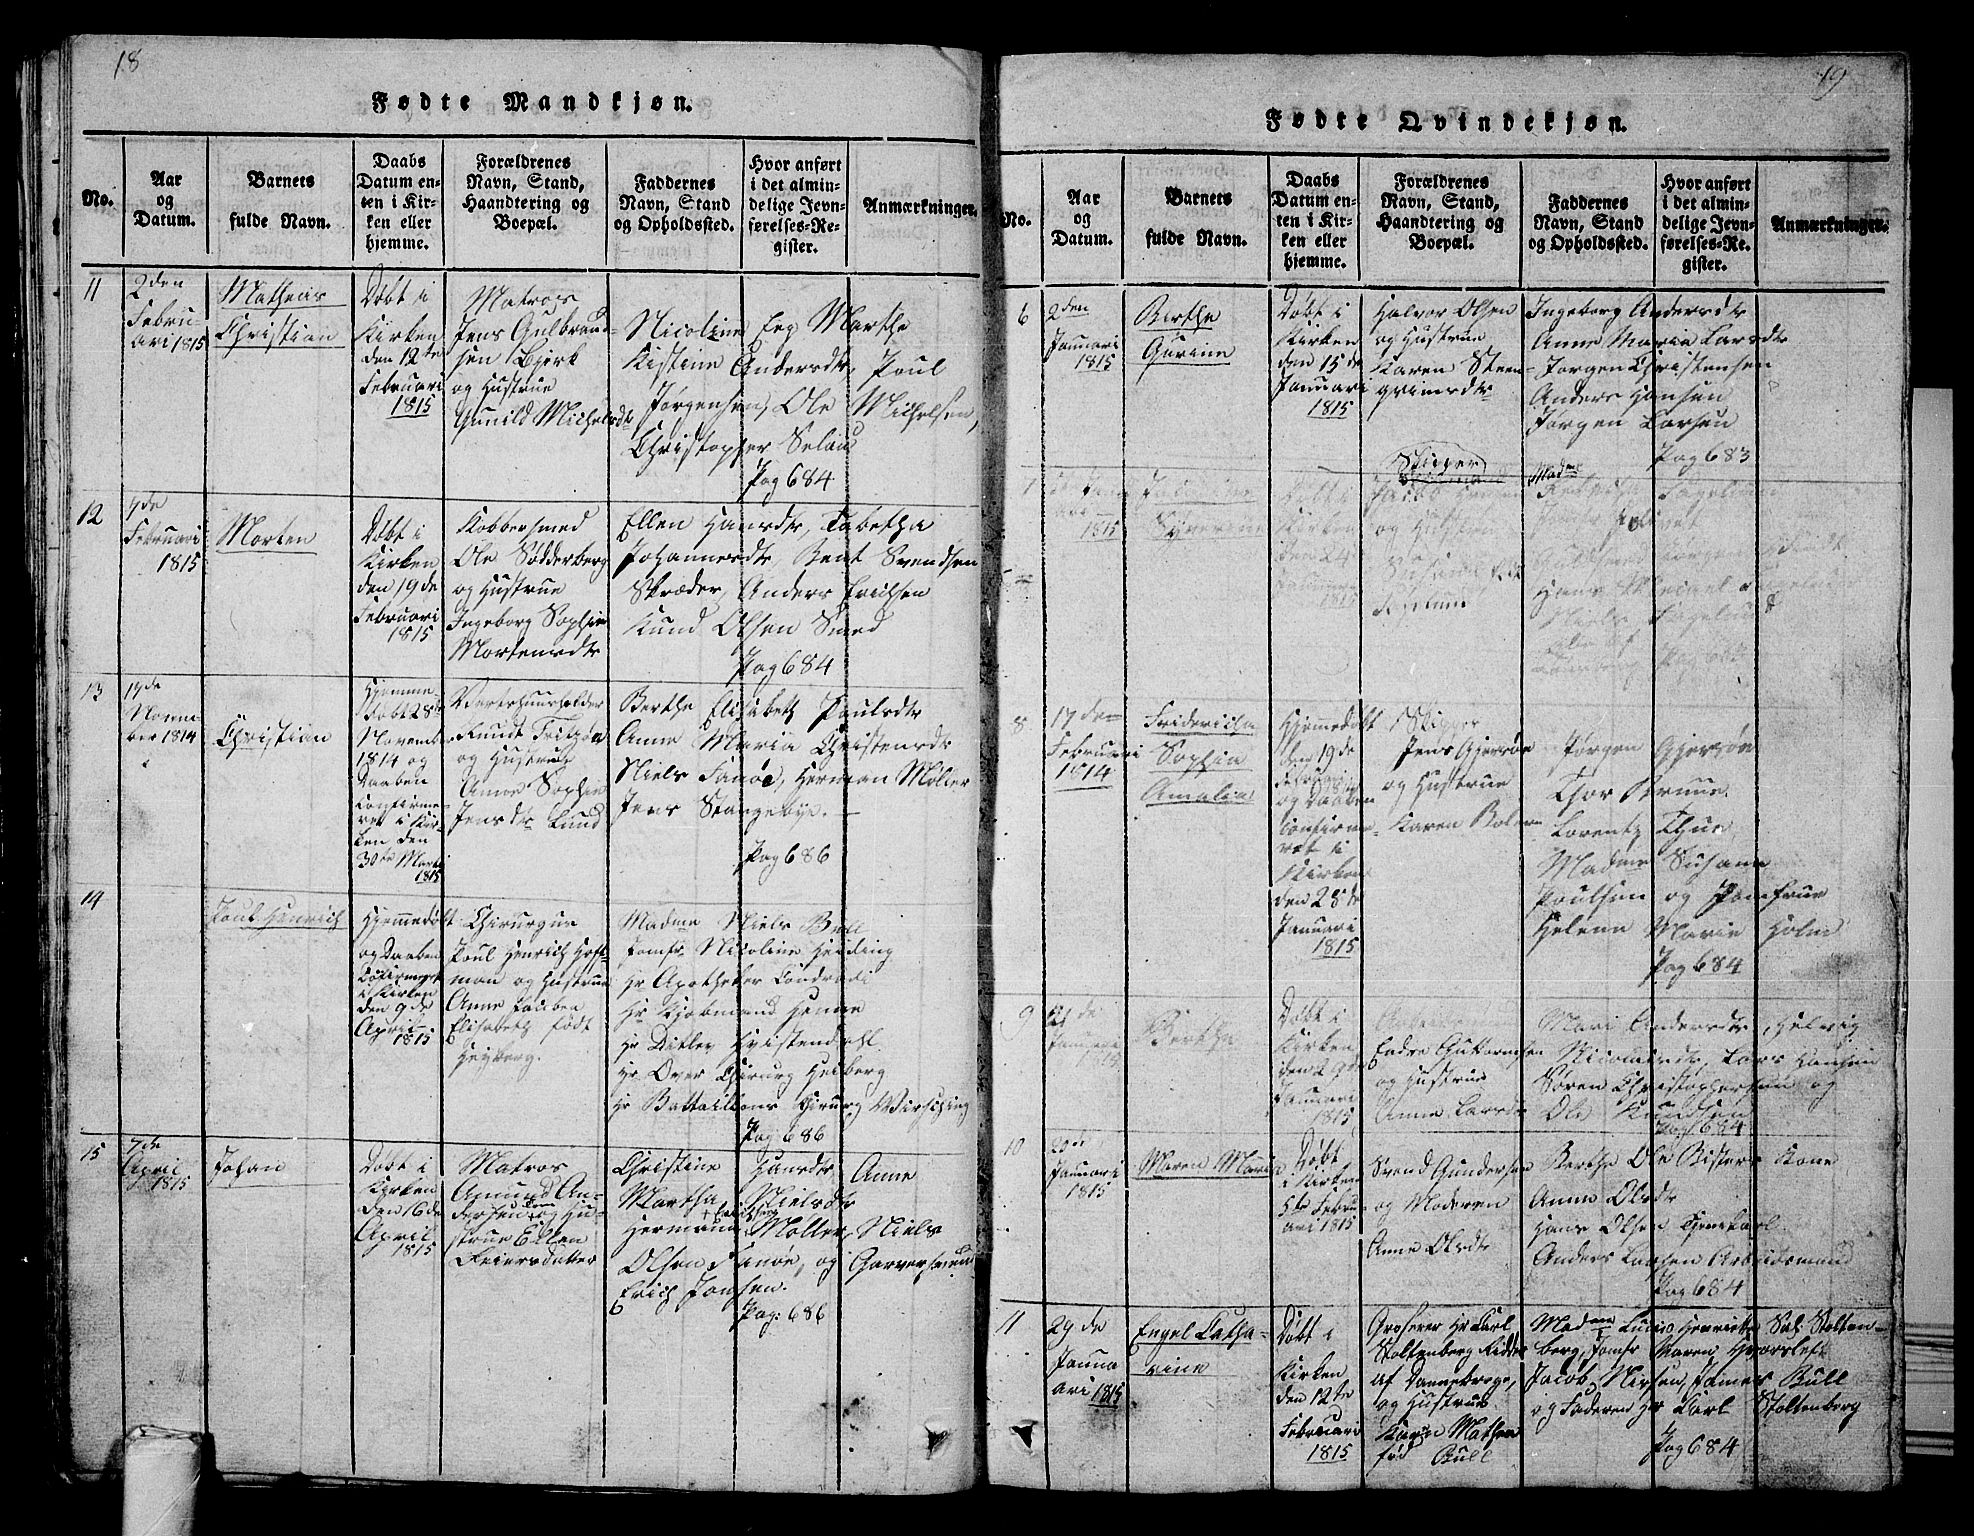 SAKO, Tønsberg kirkebøker, G/Ga/L0001: Parish register (copy) no. 1, 1813-1826, p. 18-19